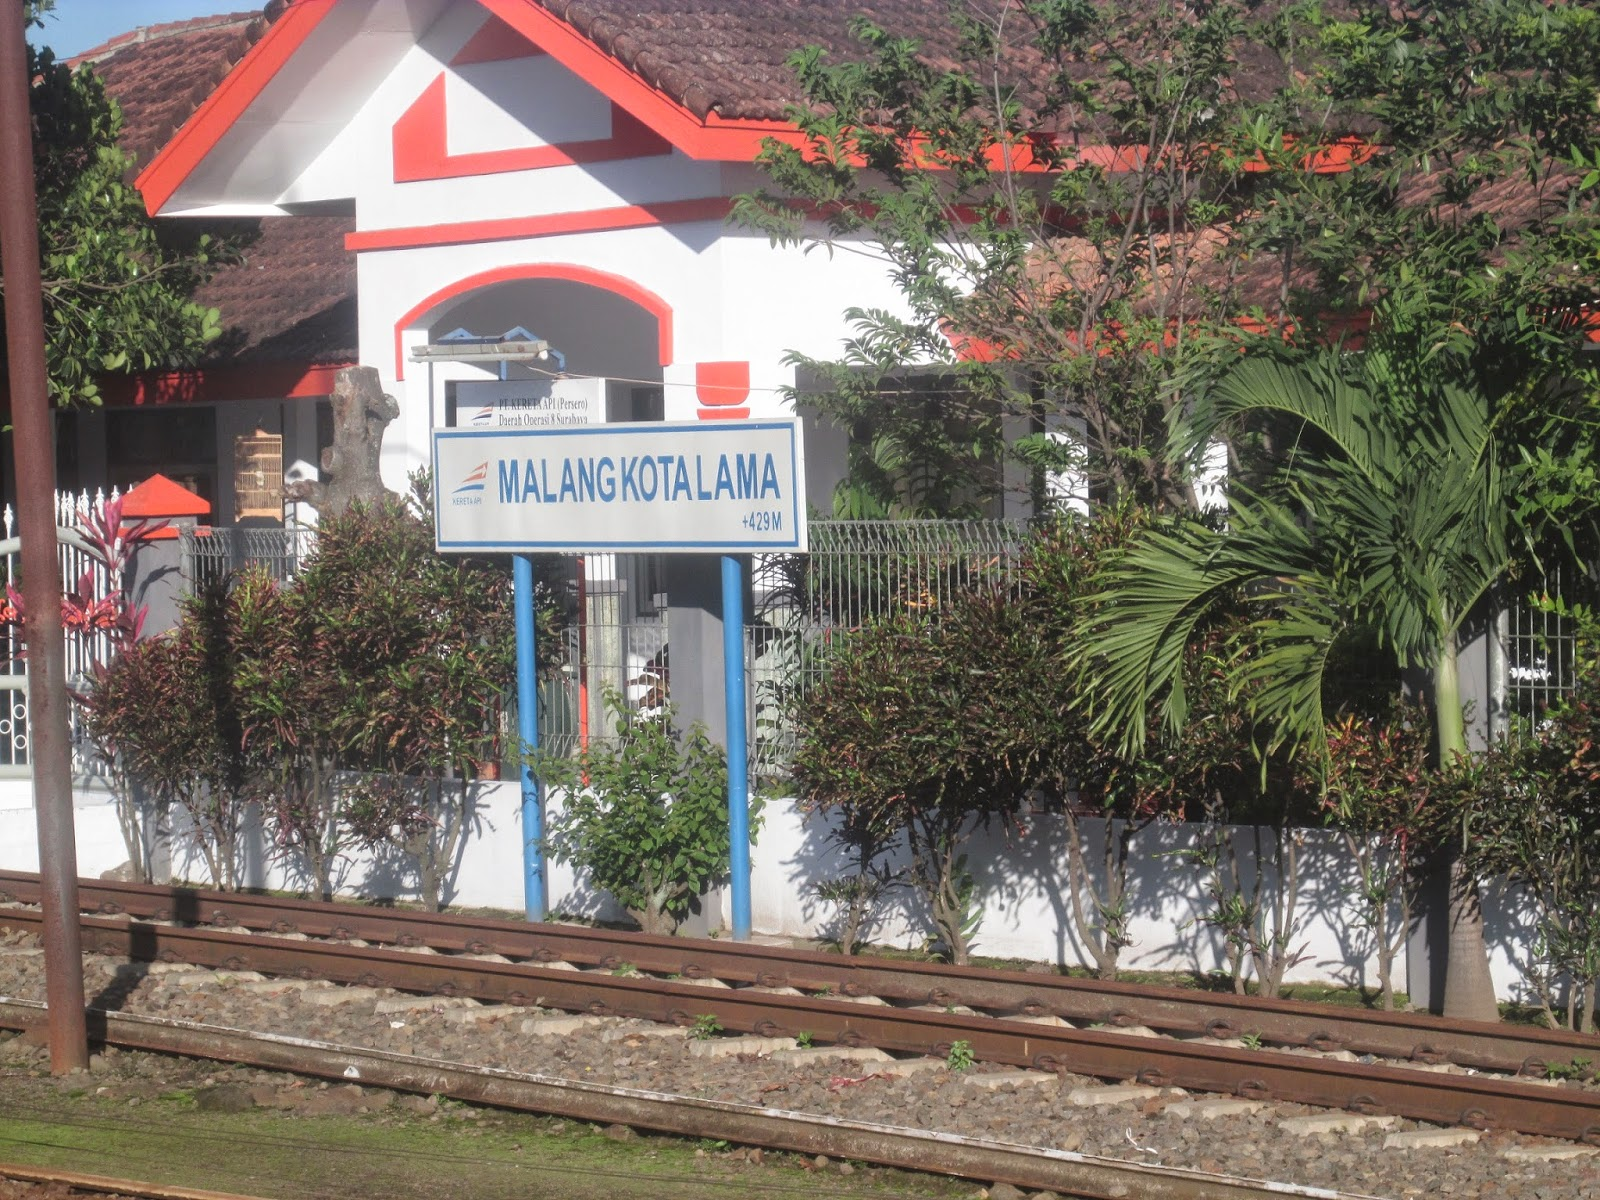 Malang Kota Lama Train Station